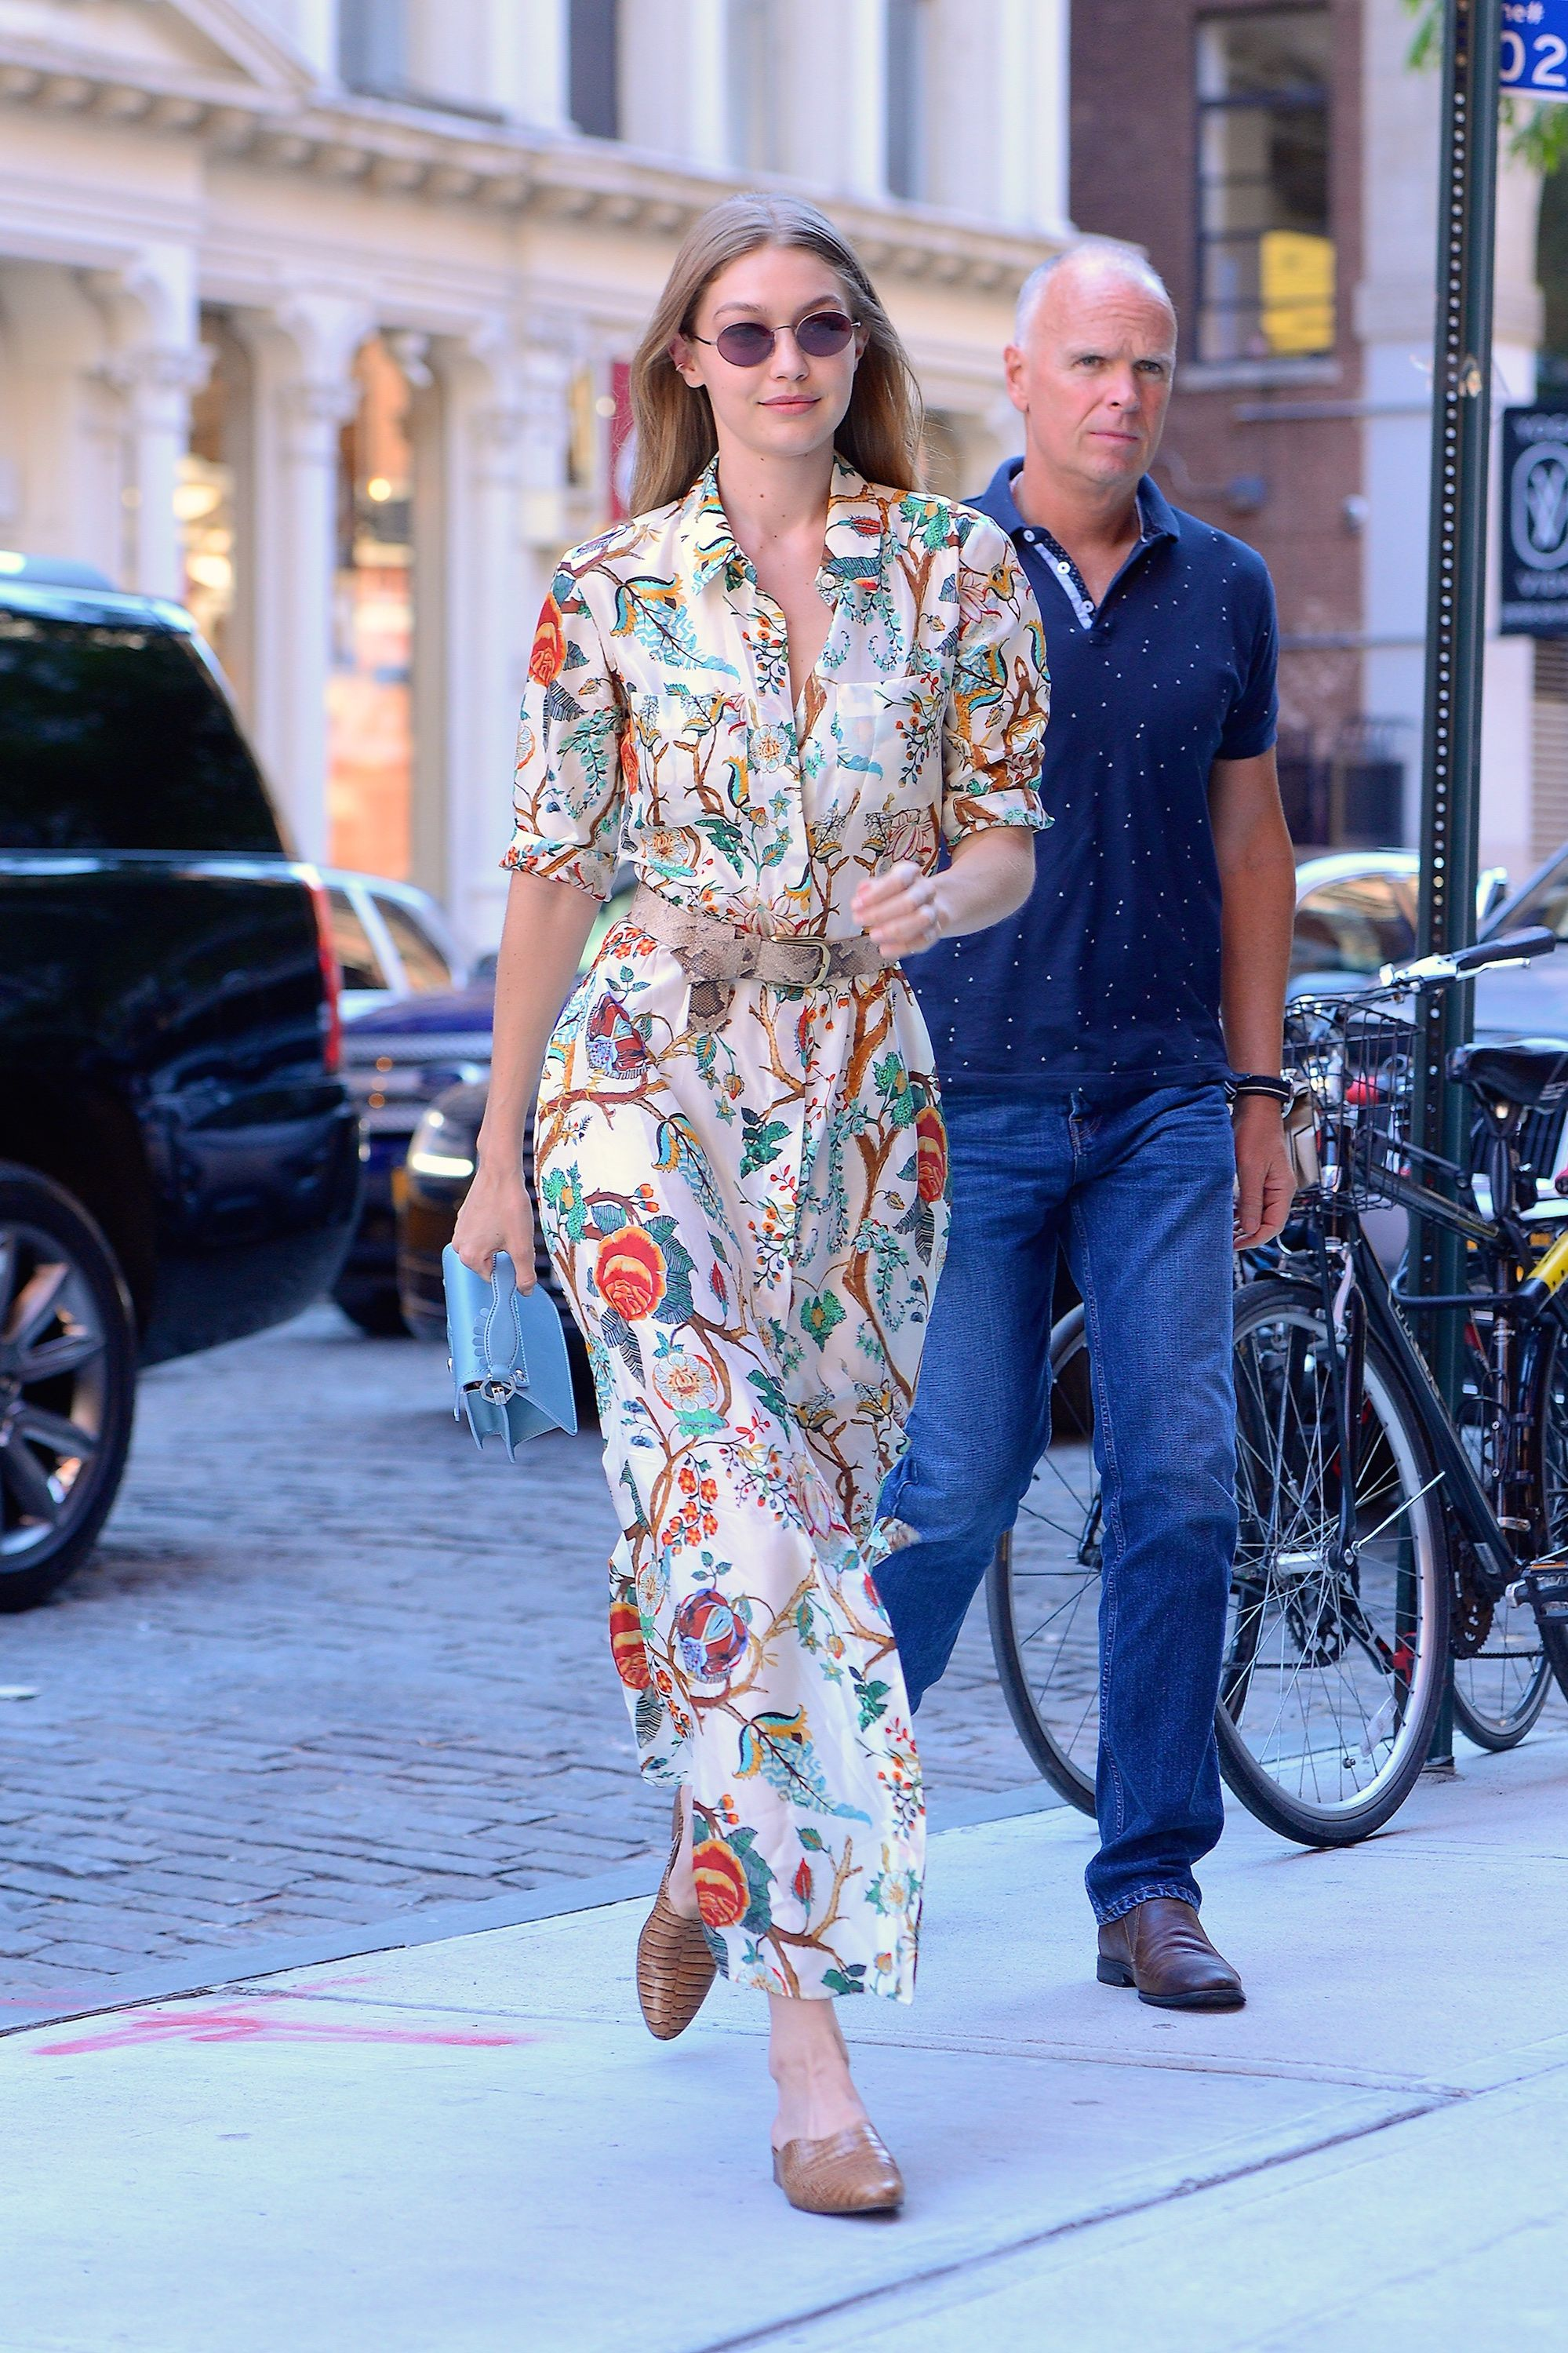 June 19, 2018 The model looked summer-ready in NYC with a floral dress by Alberta Ferretti. She complemented the look with croc-embossed mules from Freda Salvador, a Paula Cademartori bag, a Streets Ahead belt, and Oliver Peoples sunglasses.